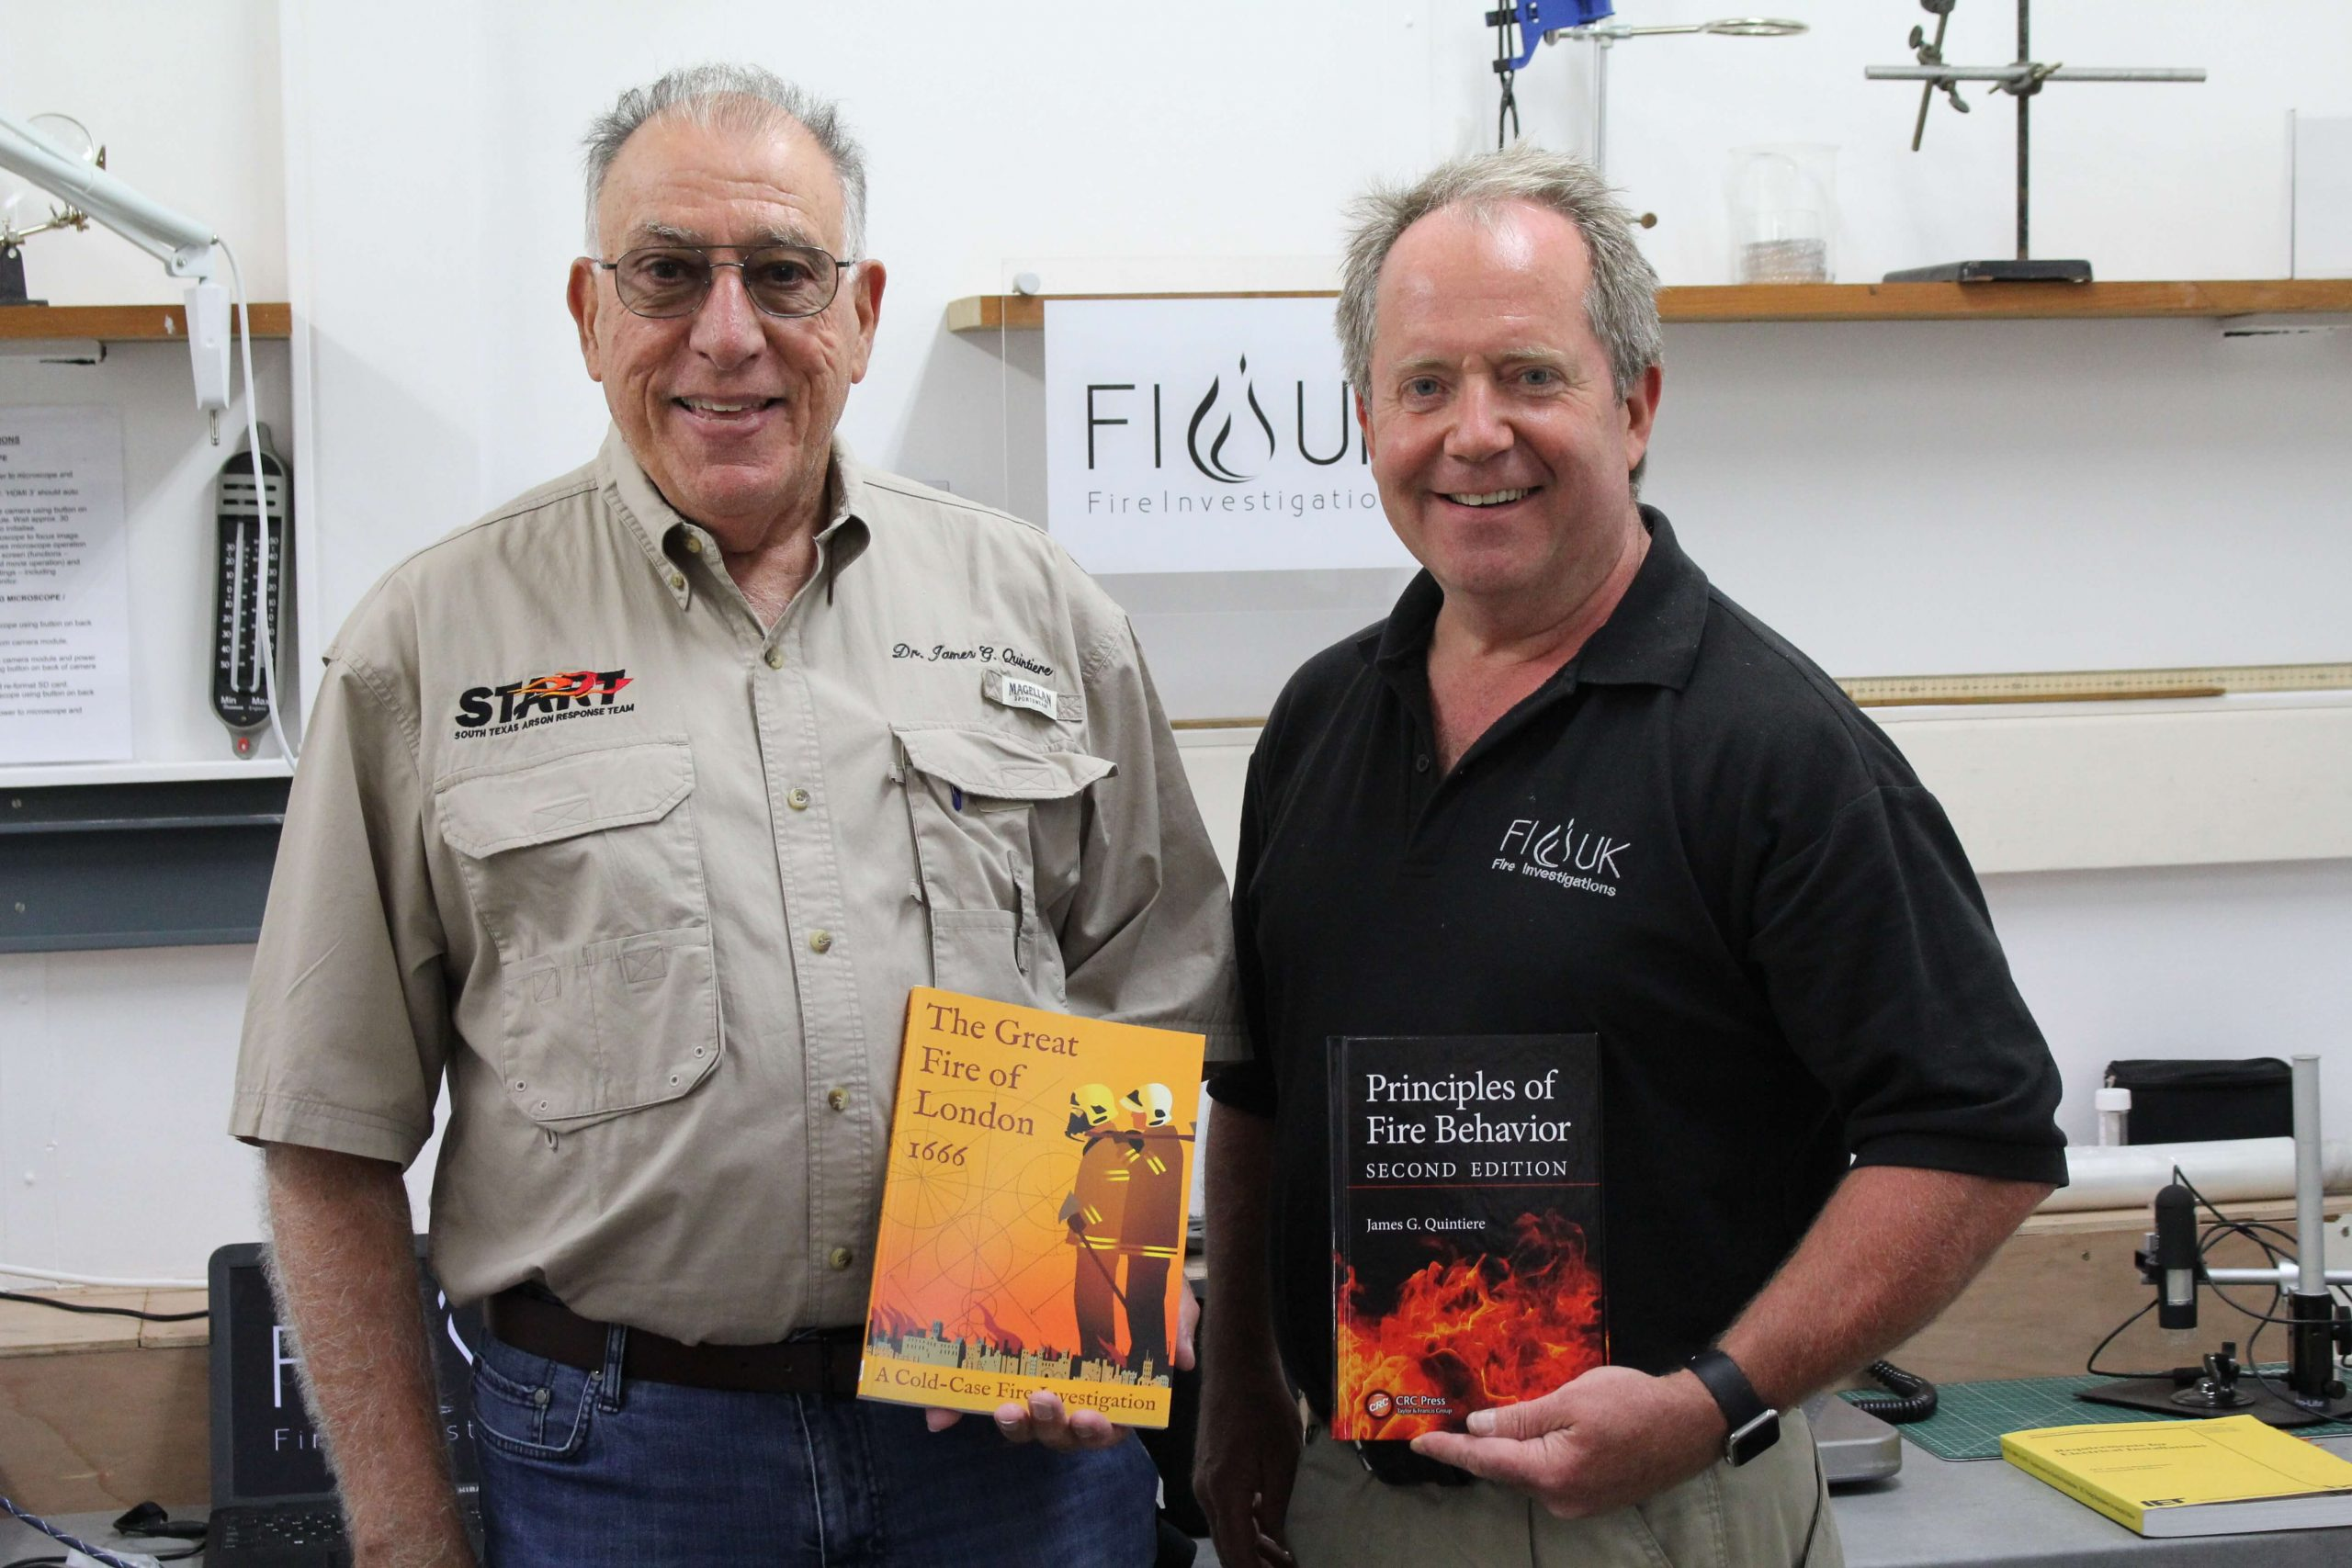 Advanced Principles of Fire Dynamics 2019 Course with FI-UK and Dr Quintiere